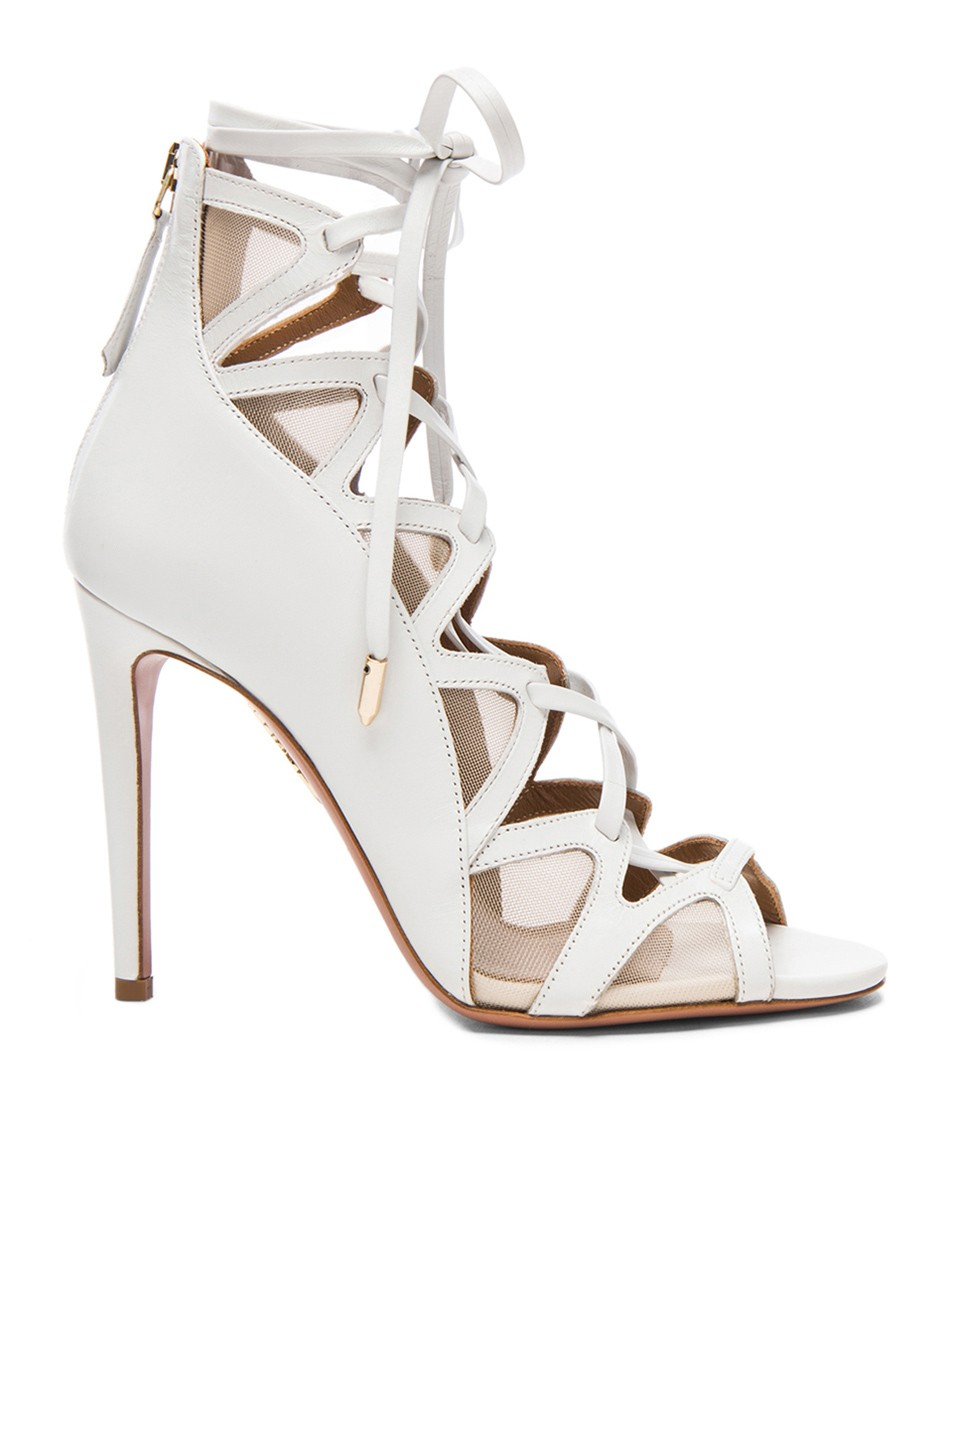 Shopping list the 25 best wedding shoes luella june shopping list the 25 best wedding shoes junglespirit Choice Image